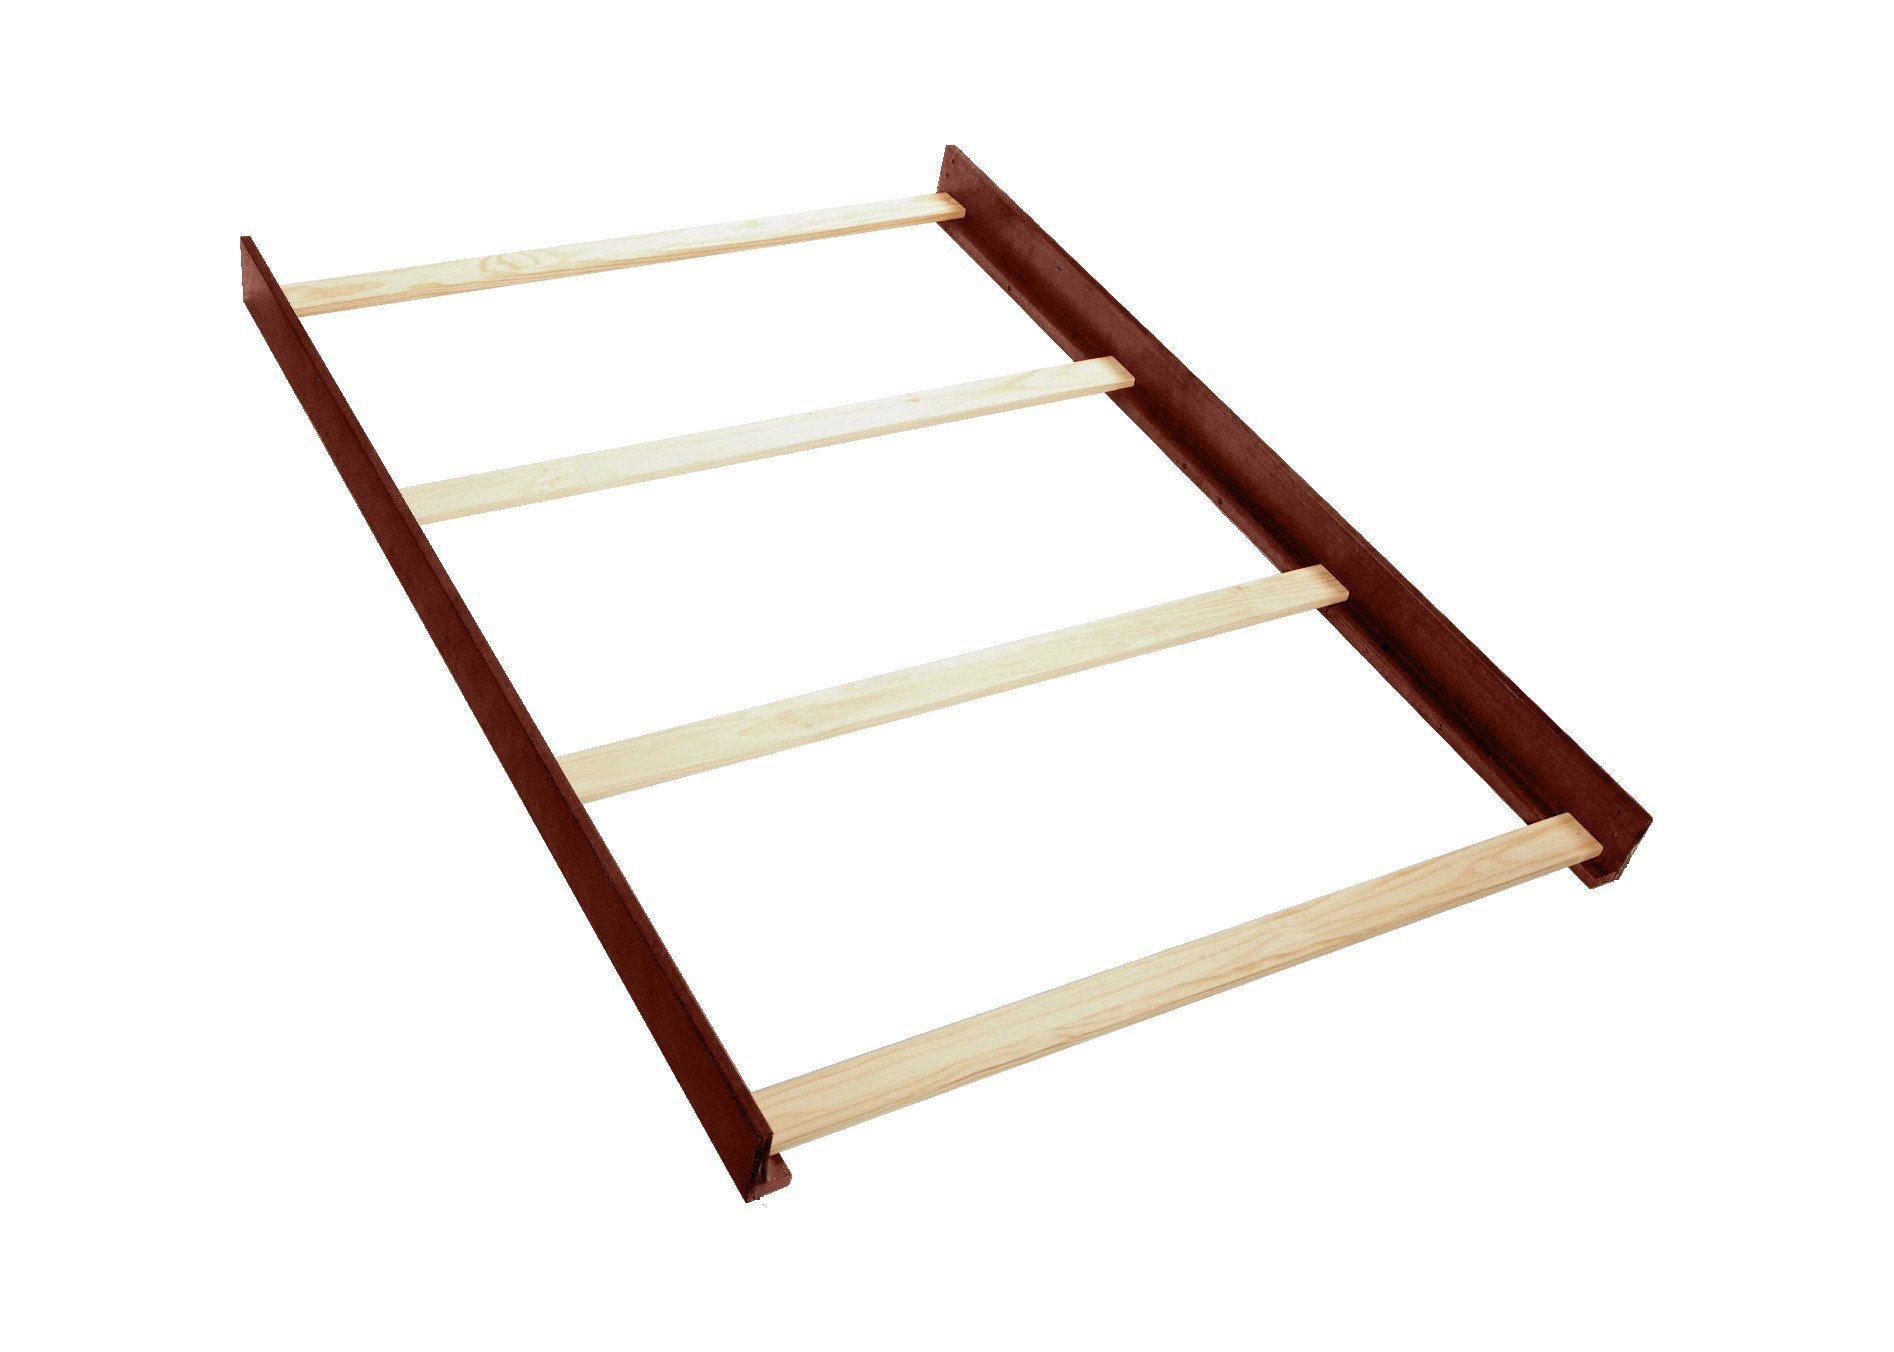 Babi Italia Crib Full Size Conversion Kit Bed Rails for Eastside & Harrington Cribs - Walnut